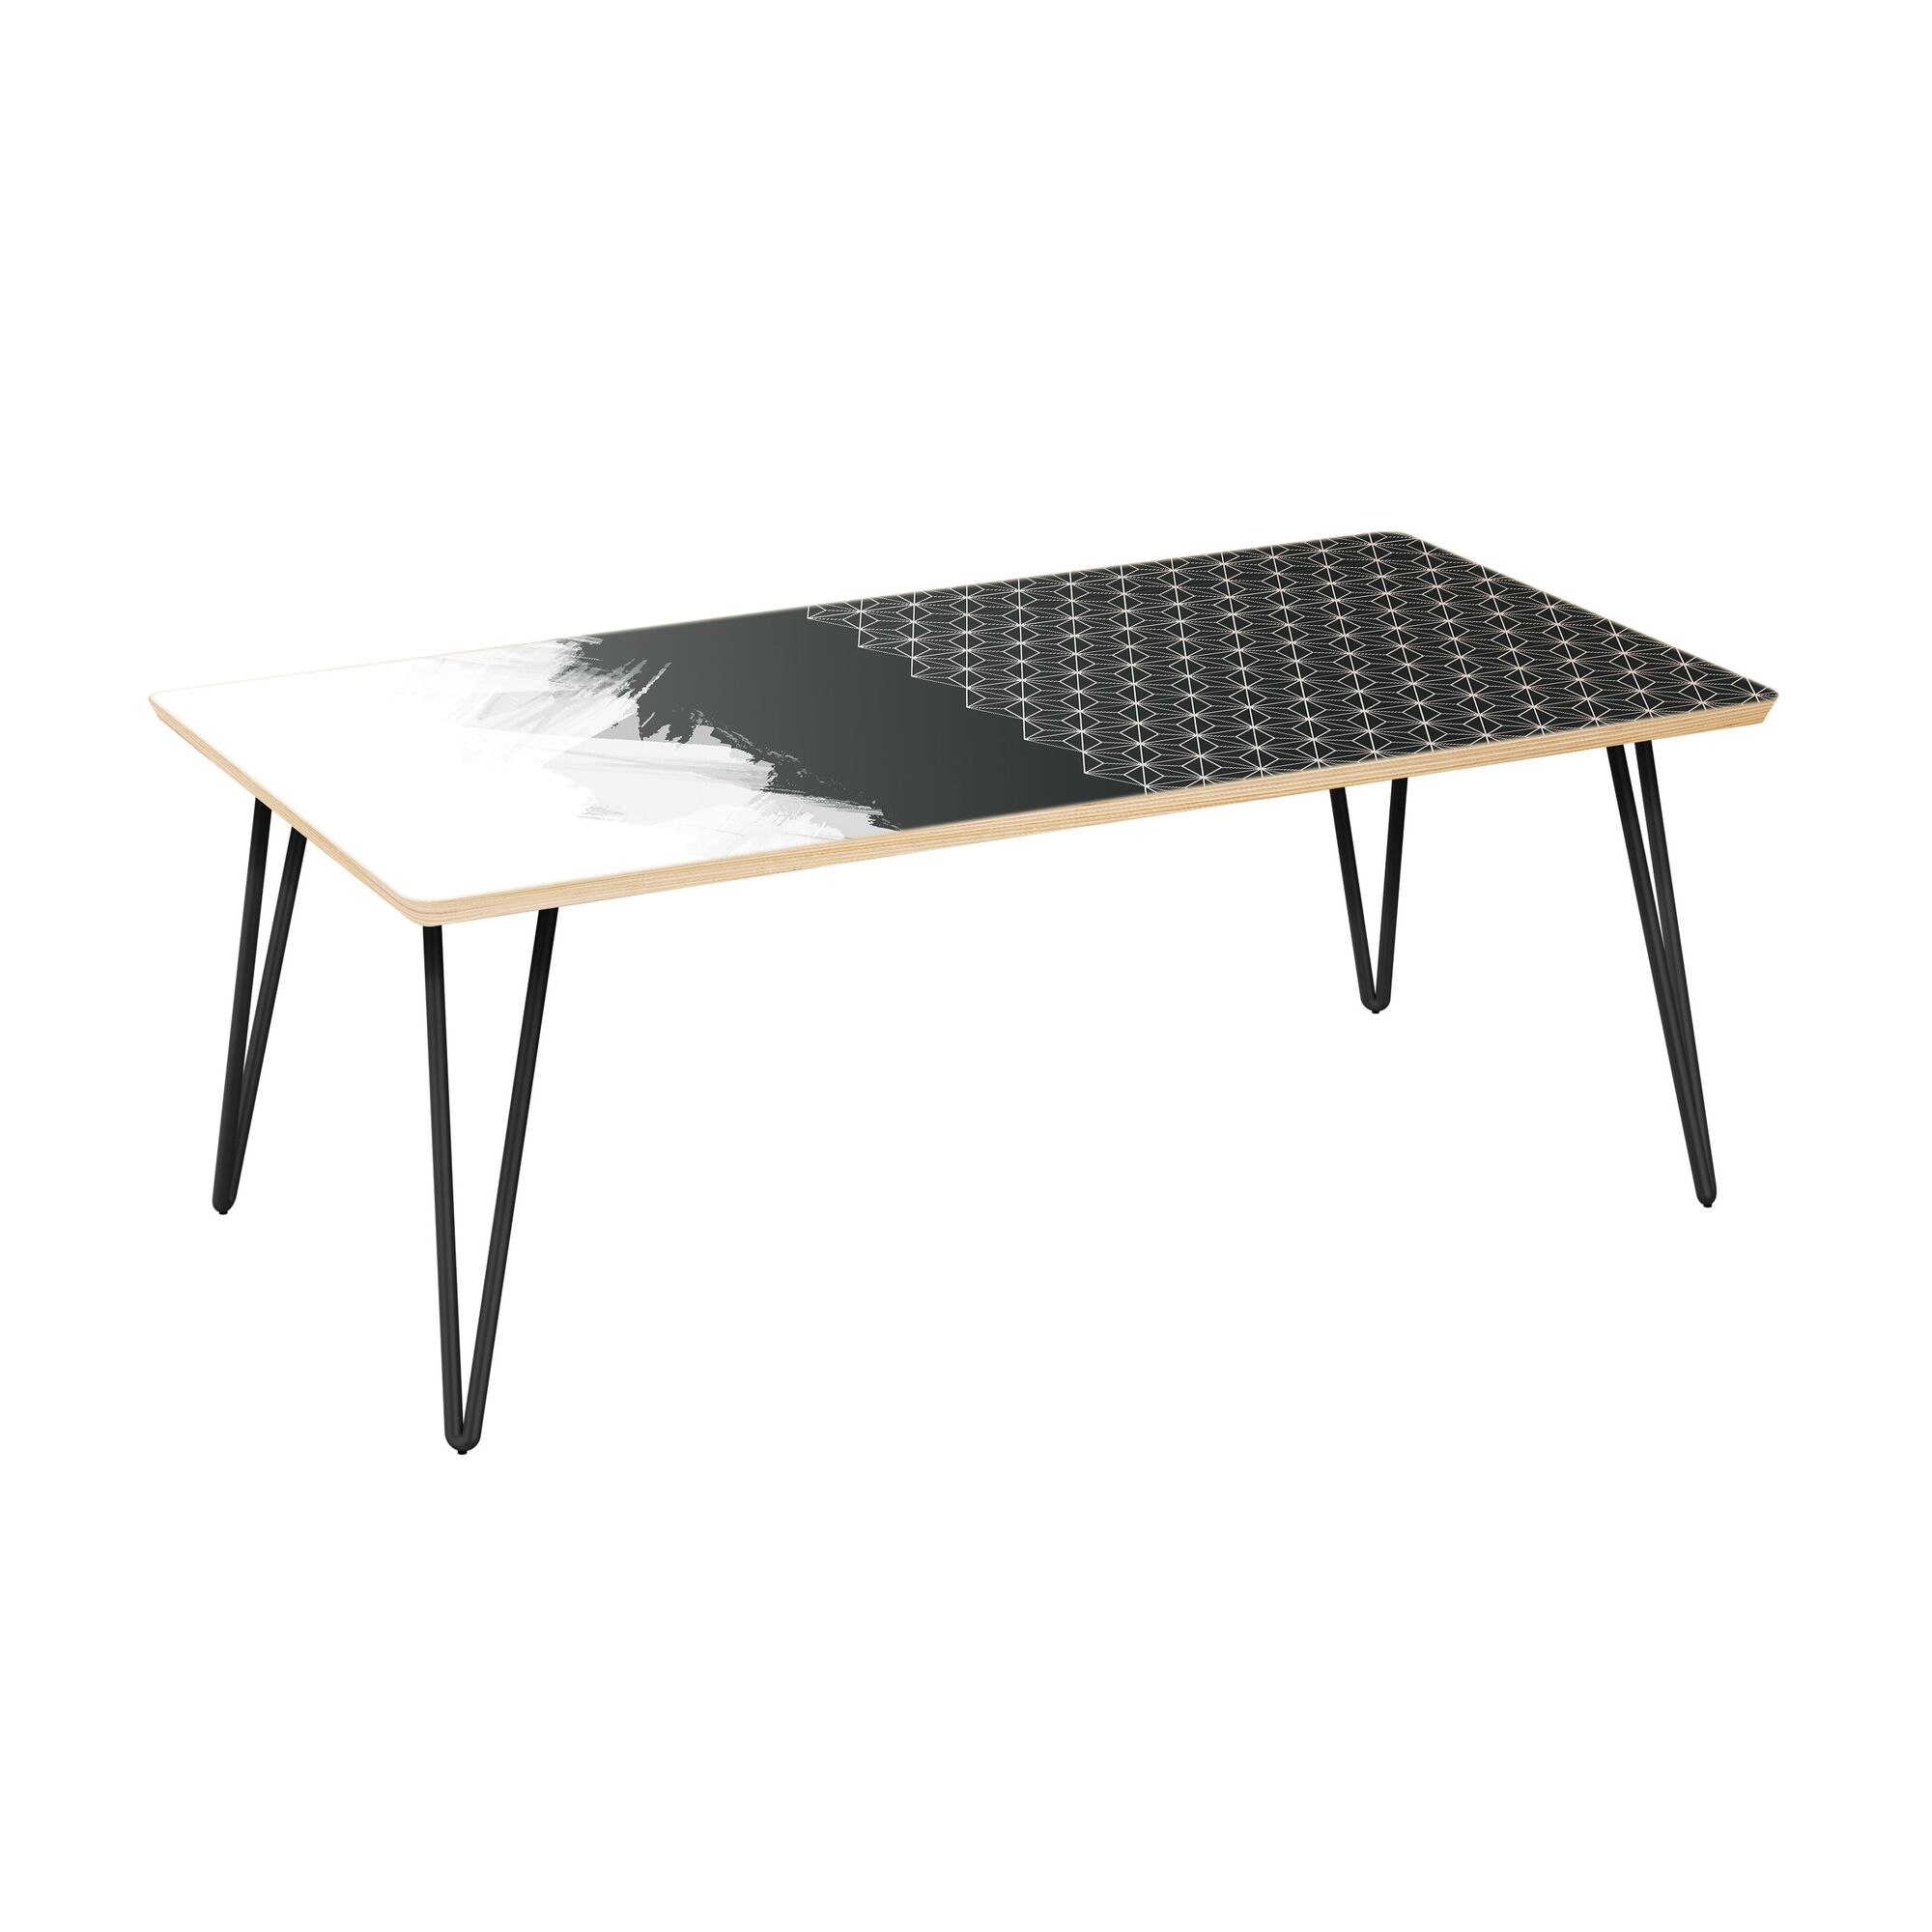 Eudy Coffee Table Table Top Color: Natural, Table Base Color: Black